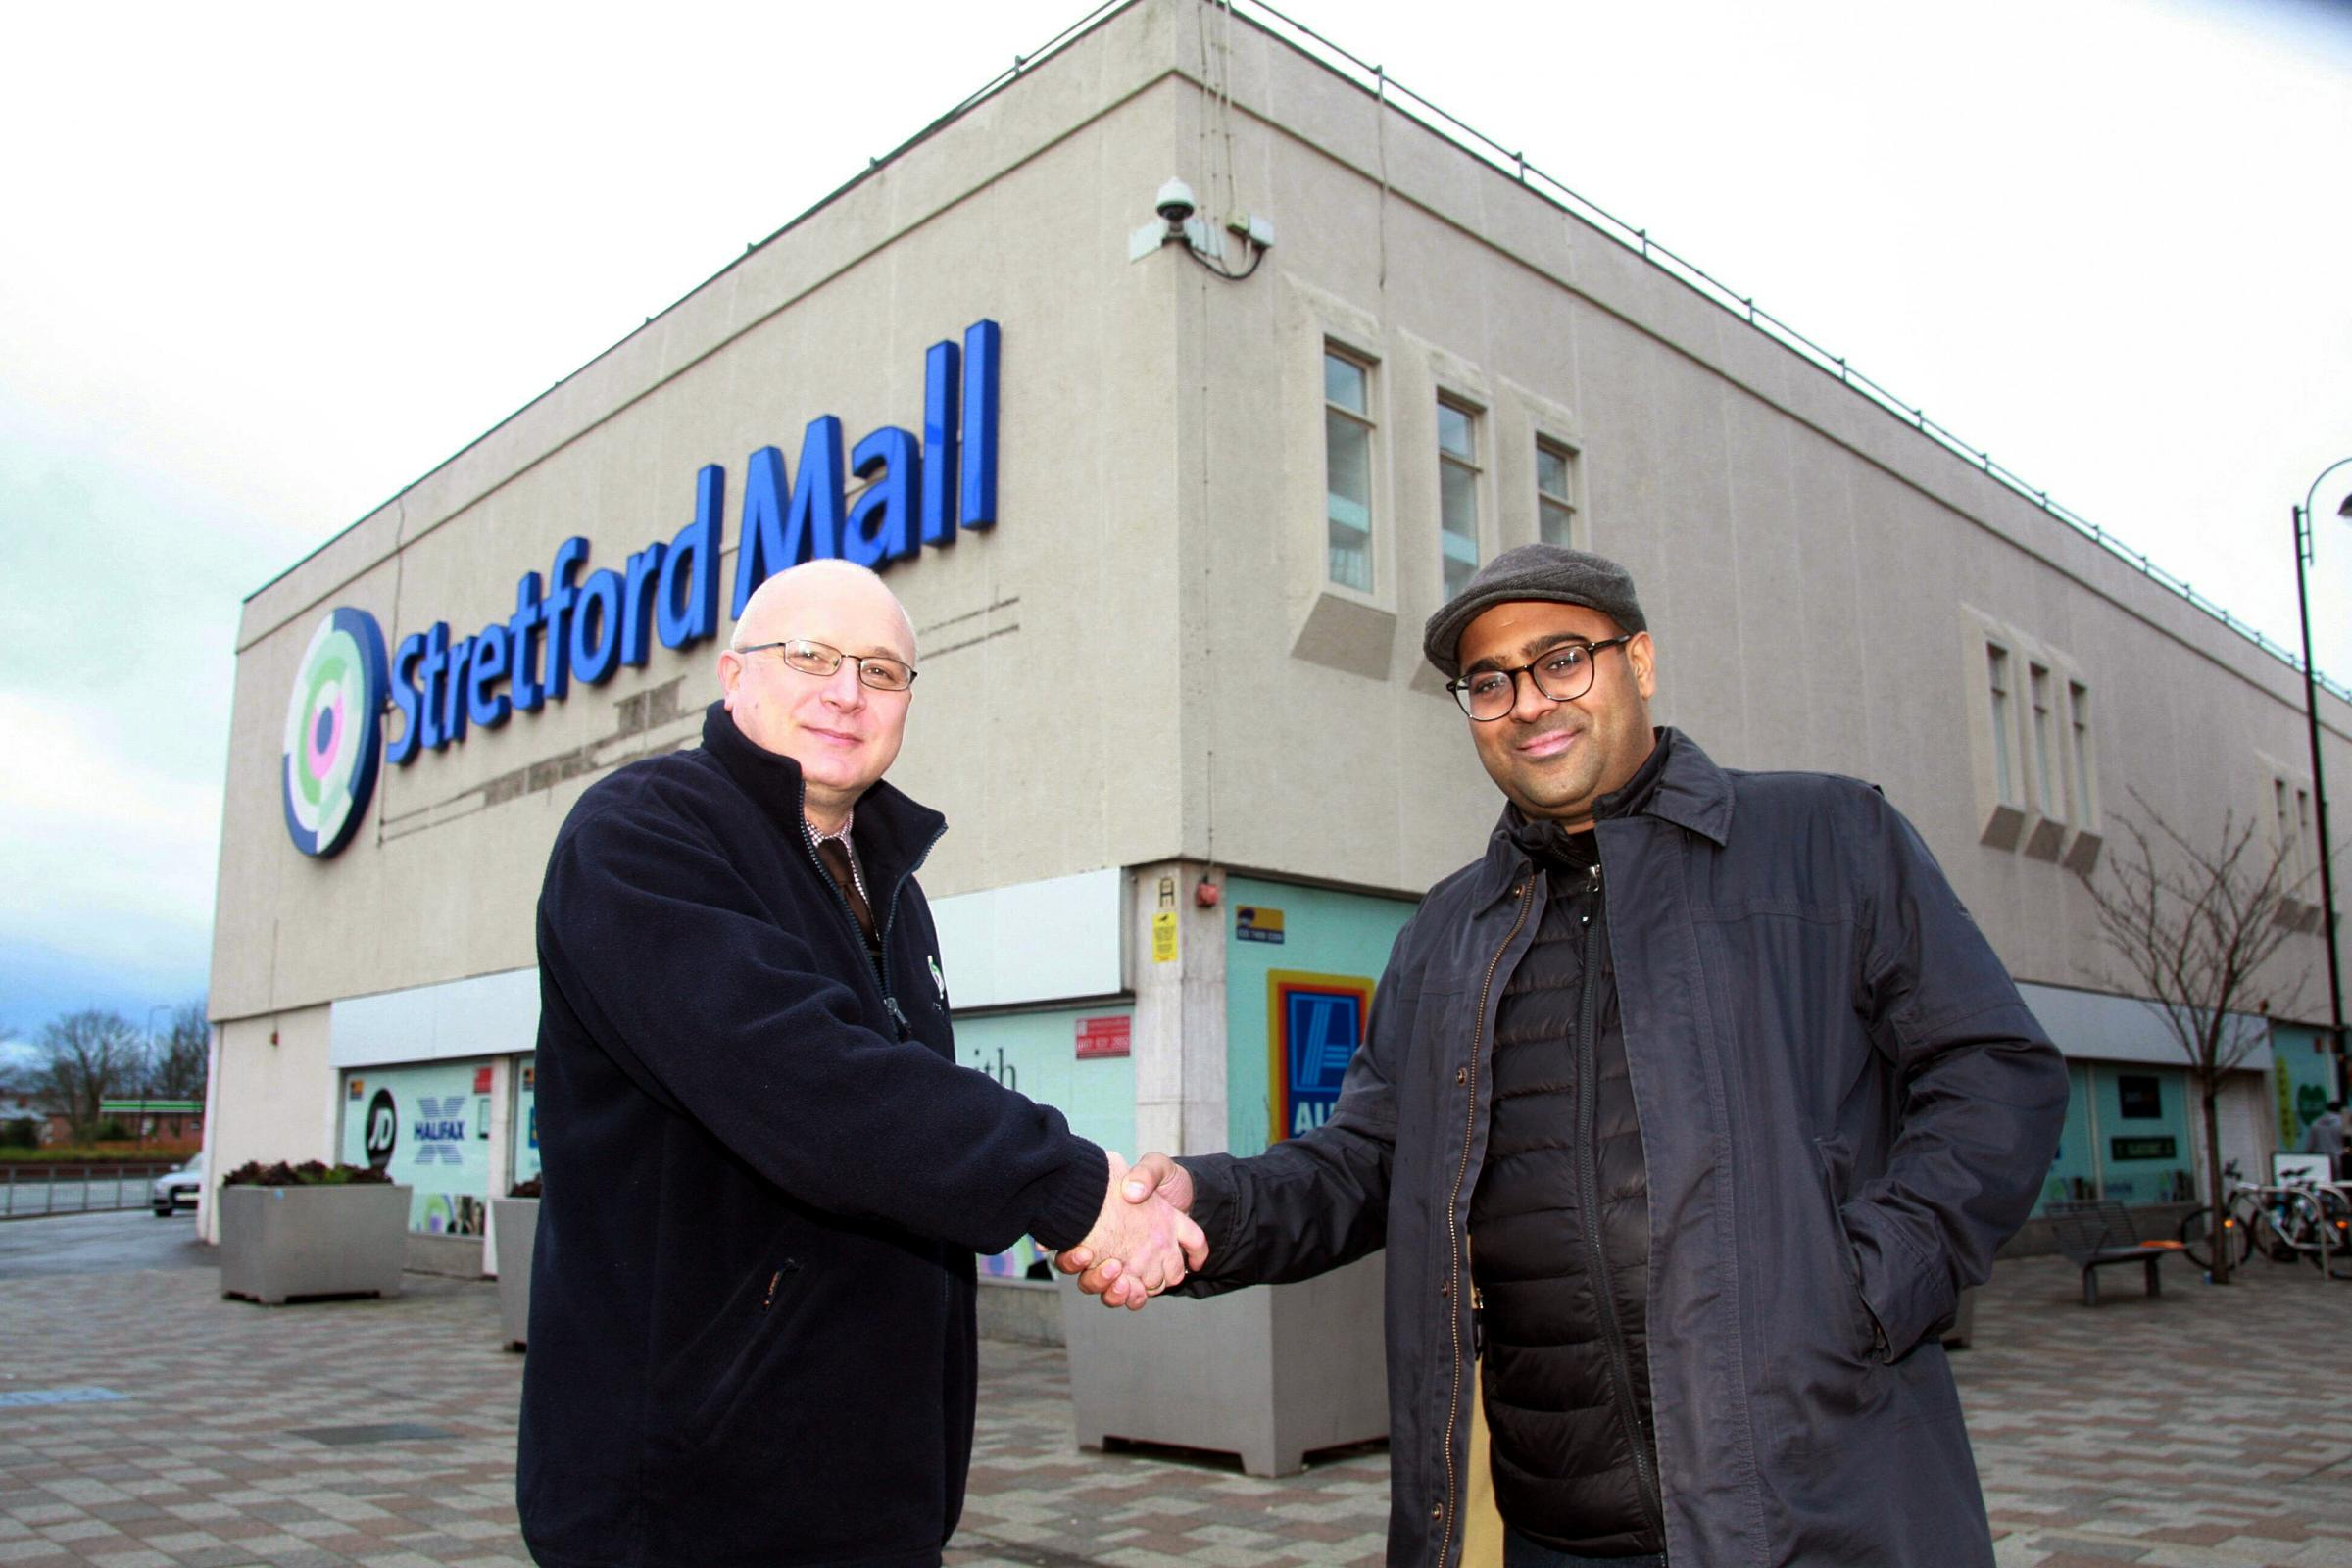 Stretford Mall manager Gareth Wilkins welcomes Mital Morar